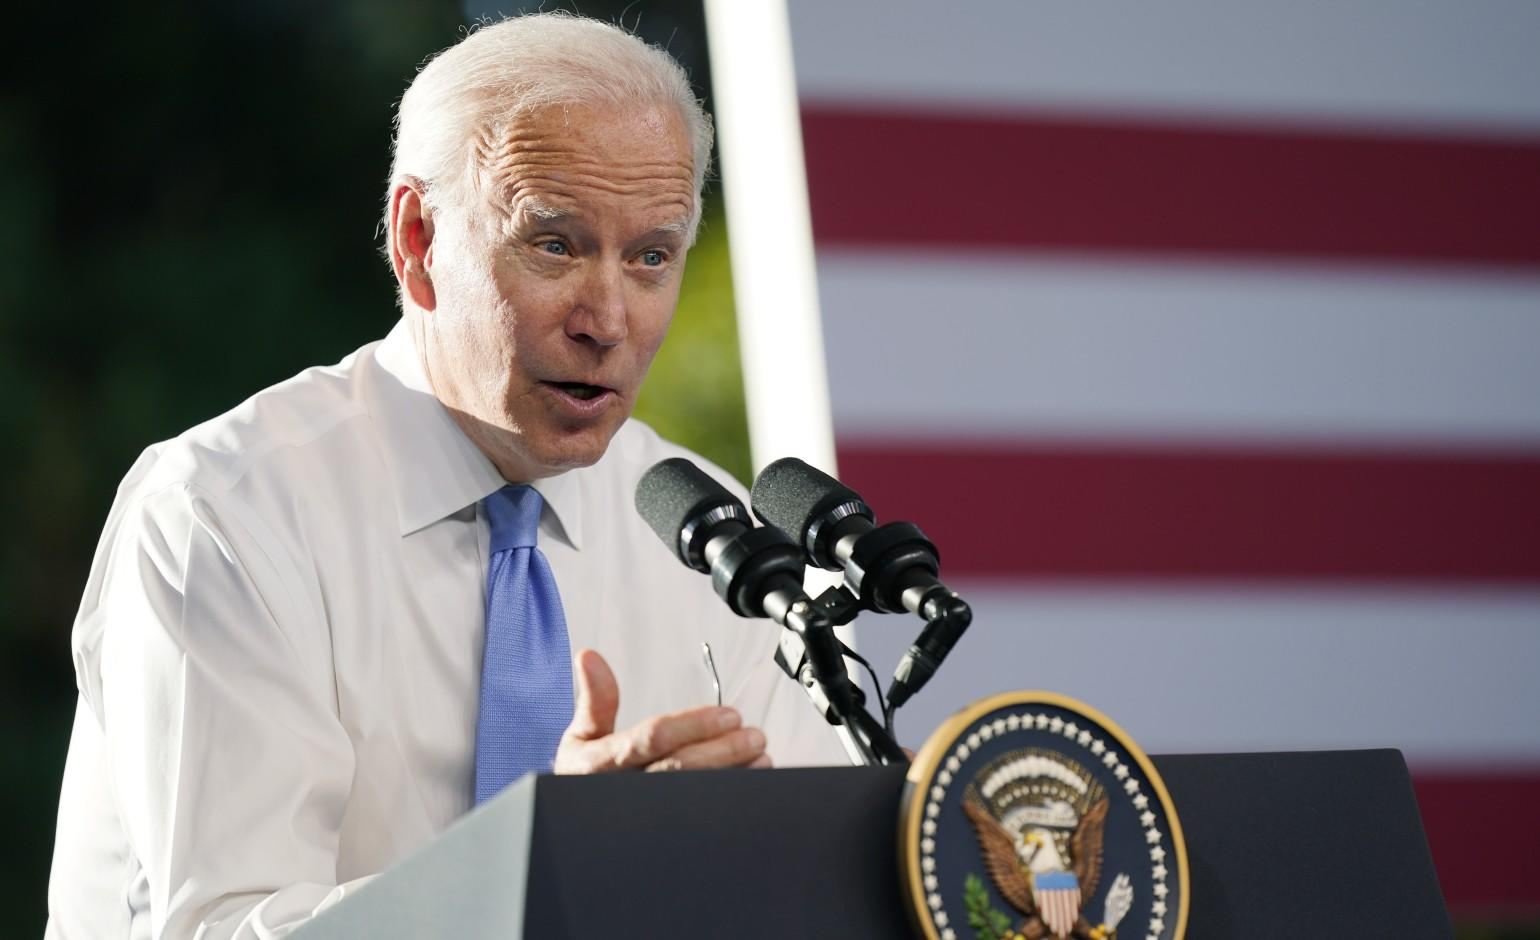 Biden warns Putin of 'action' if Russian election interference and hacks persist